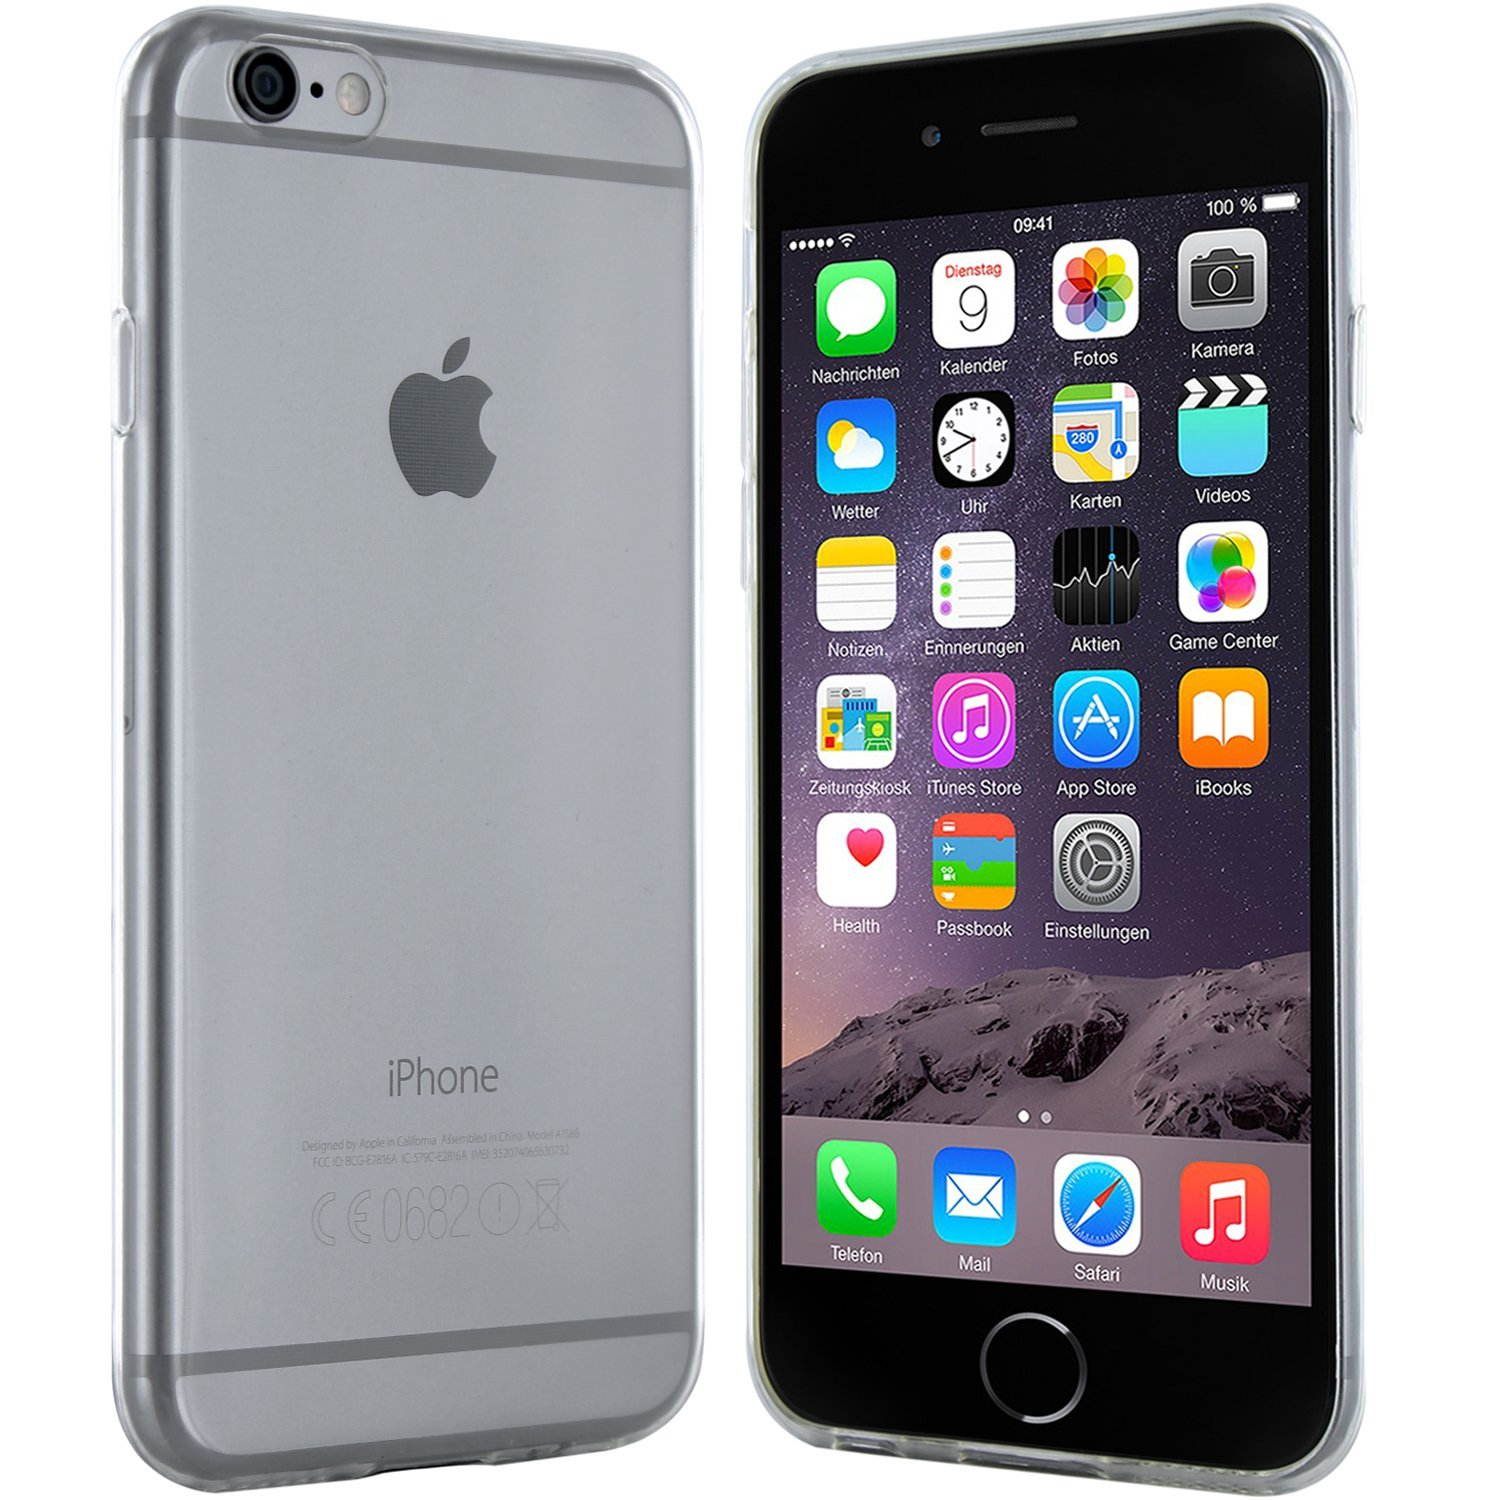 iPhone 6 Plus Hülle in Transparent - Silikonhülle Case Schutzhülle Tasche für Apple iPhone 6 Plus